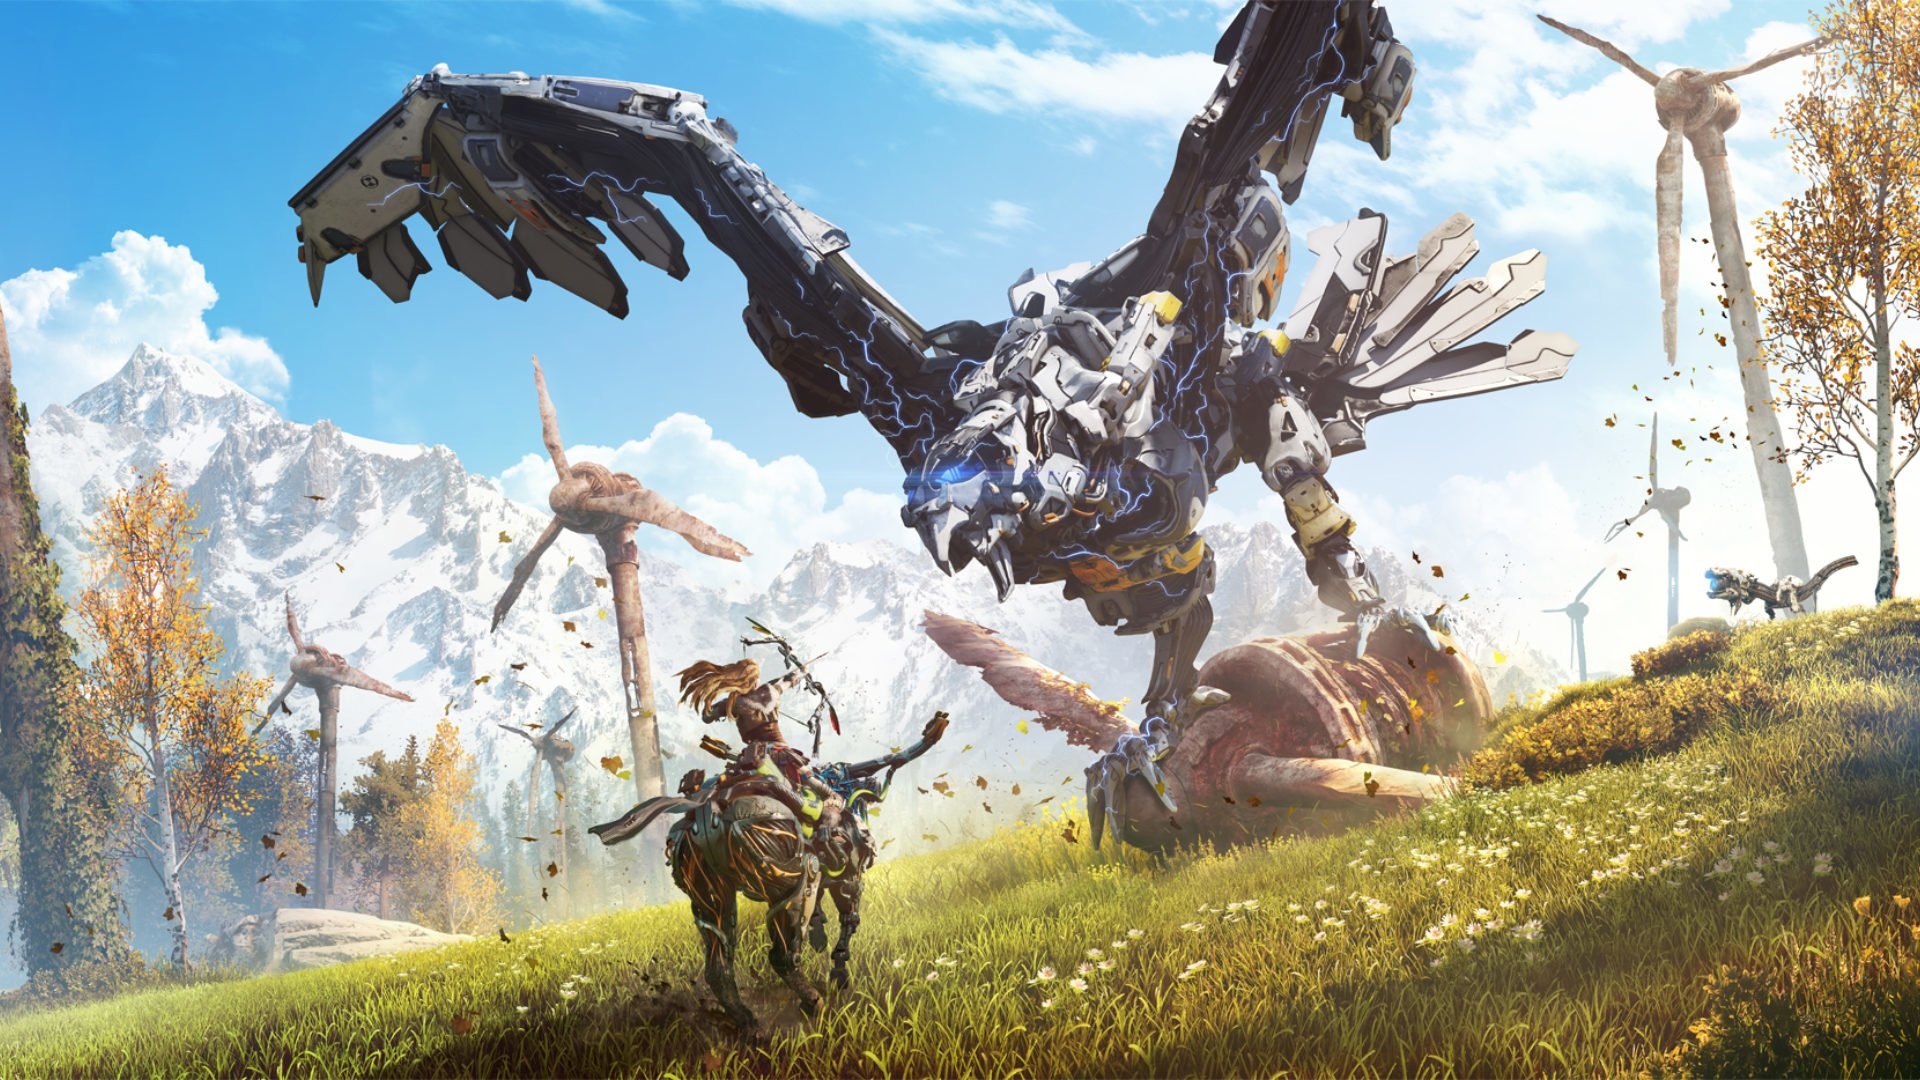 161 Horizon Zero Dawn HD Wallpapers   Background Images   Wallpaper     Horizon Zero Dawn      HD Wallpaper   Background Image ID 800857